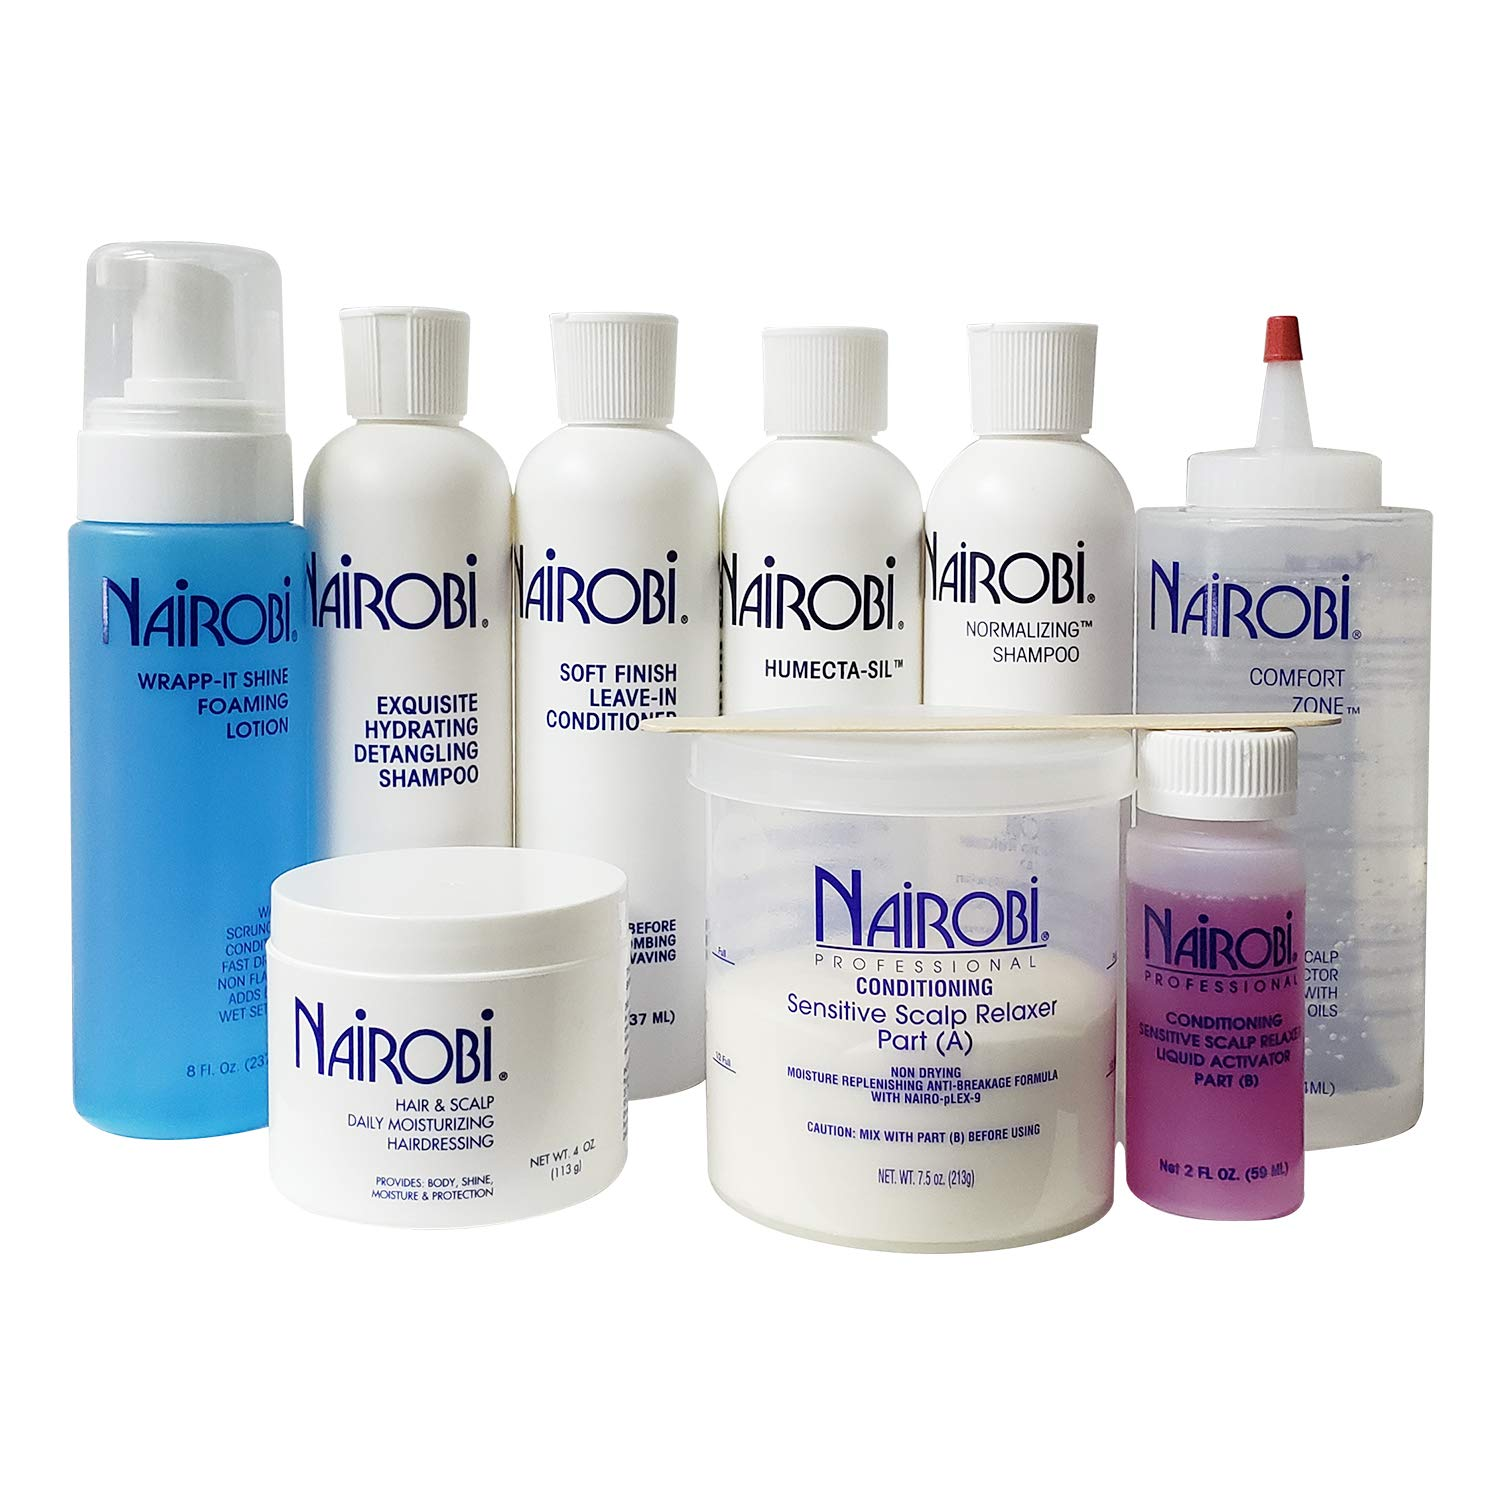 Nairobi Sensitive Scalp Relaxer System Buy Online In South Africa At Desertcart Productid 13339263